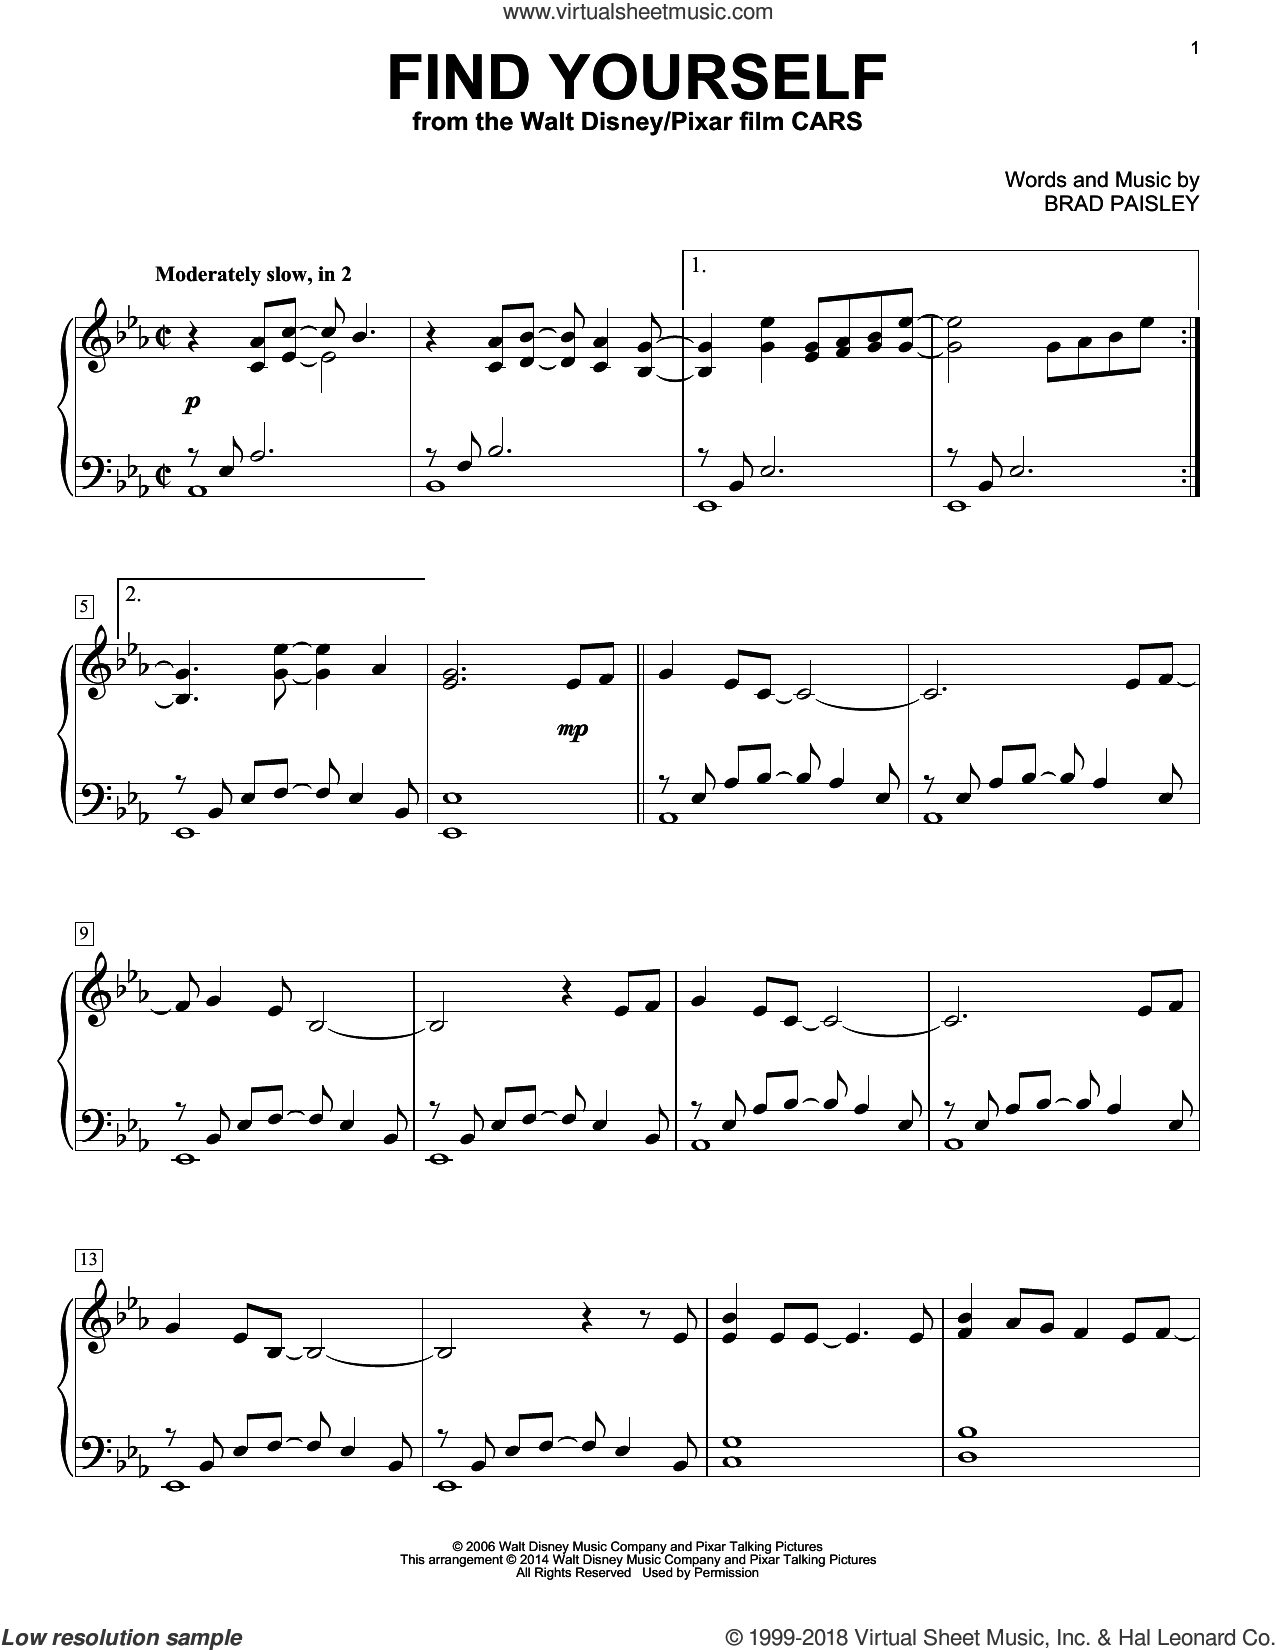 Find Yourself sheet music for piano solo by Brad Paisley, intermediate skill level